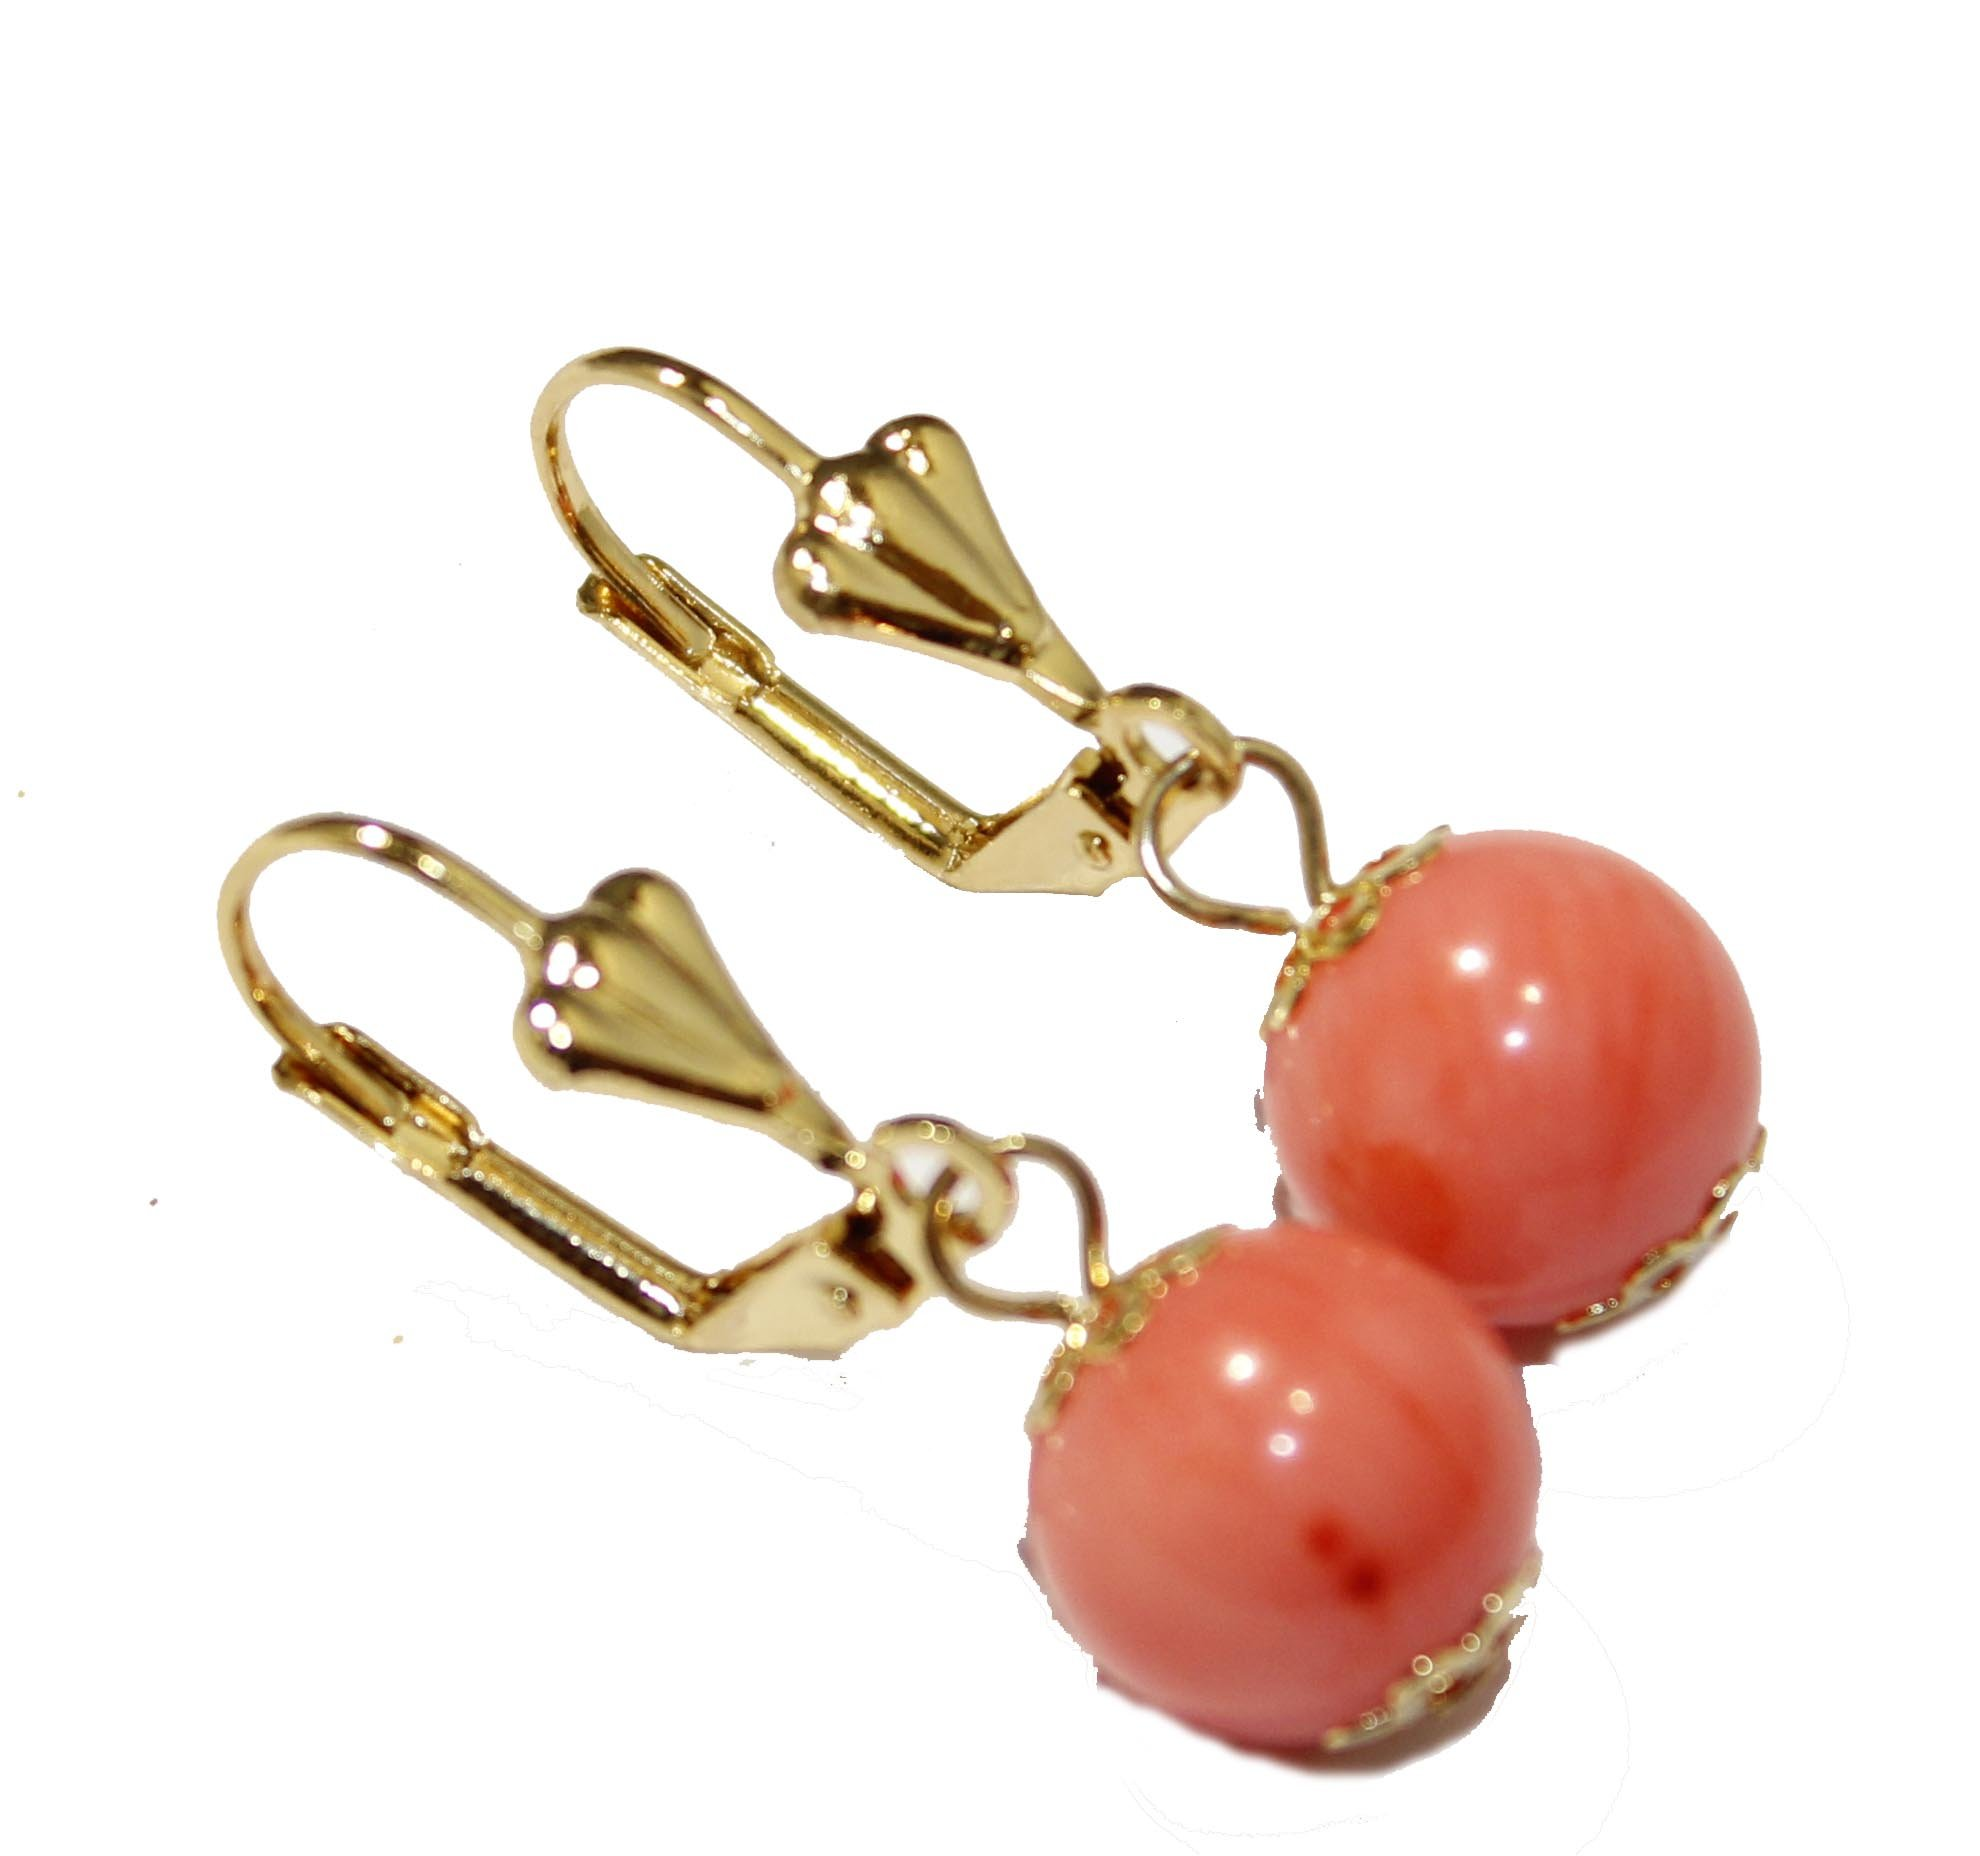 Coral 12mm Ball Earrings 18k Gold Plated Earrings Dangle Earrings - French Clasp